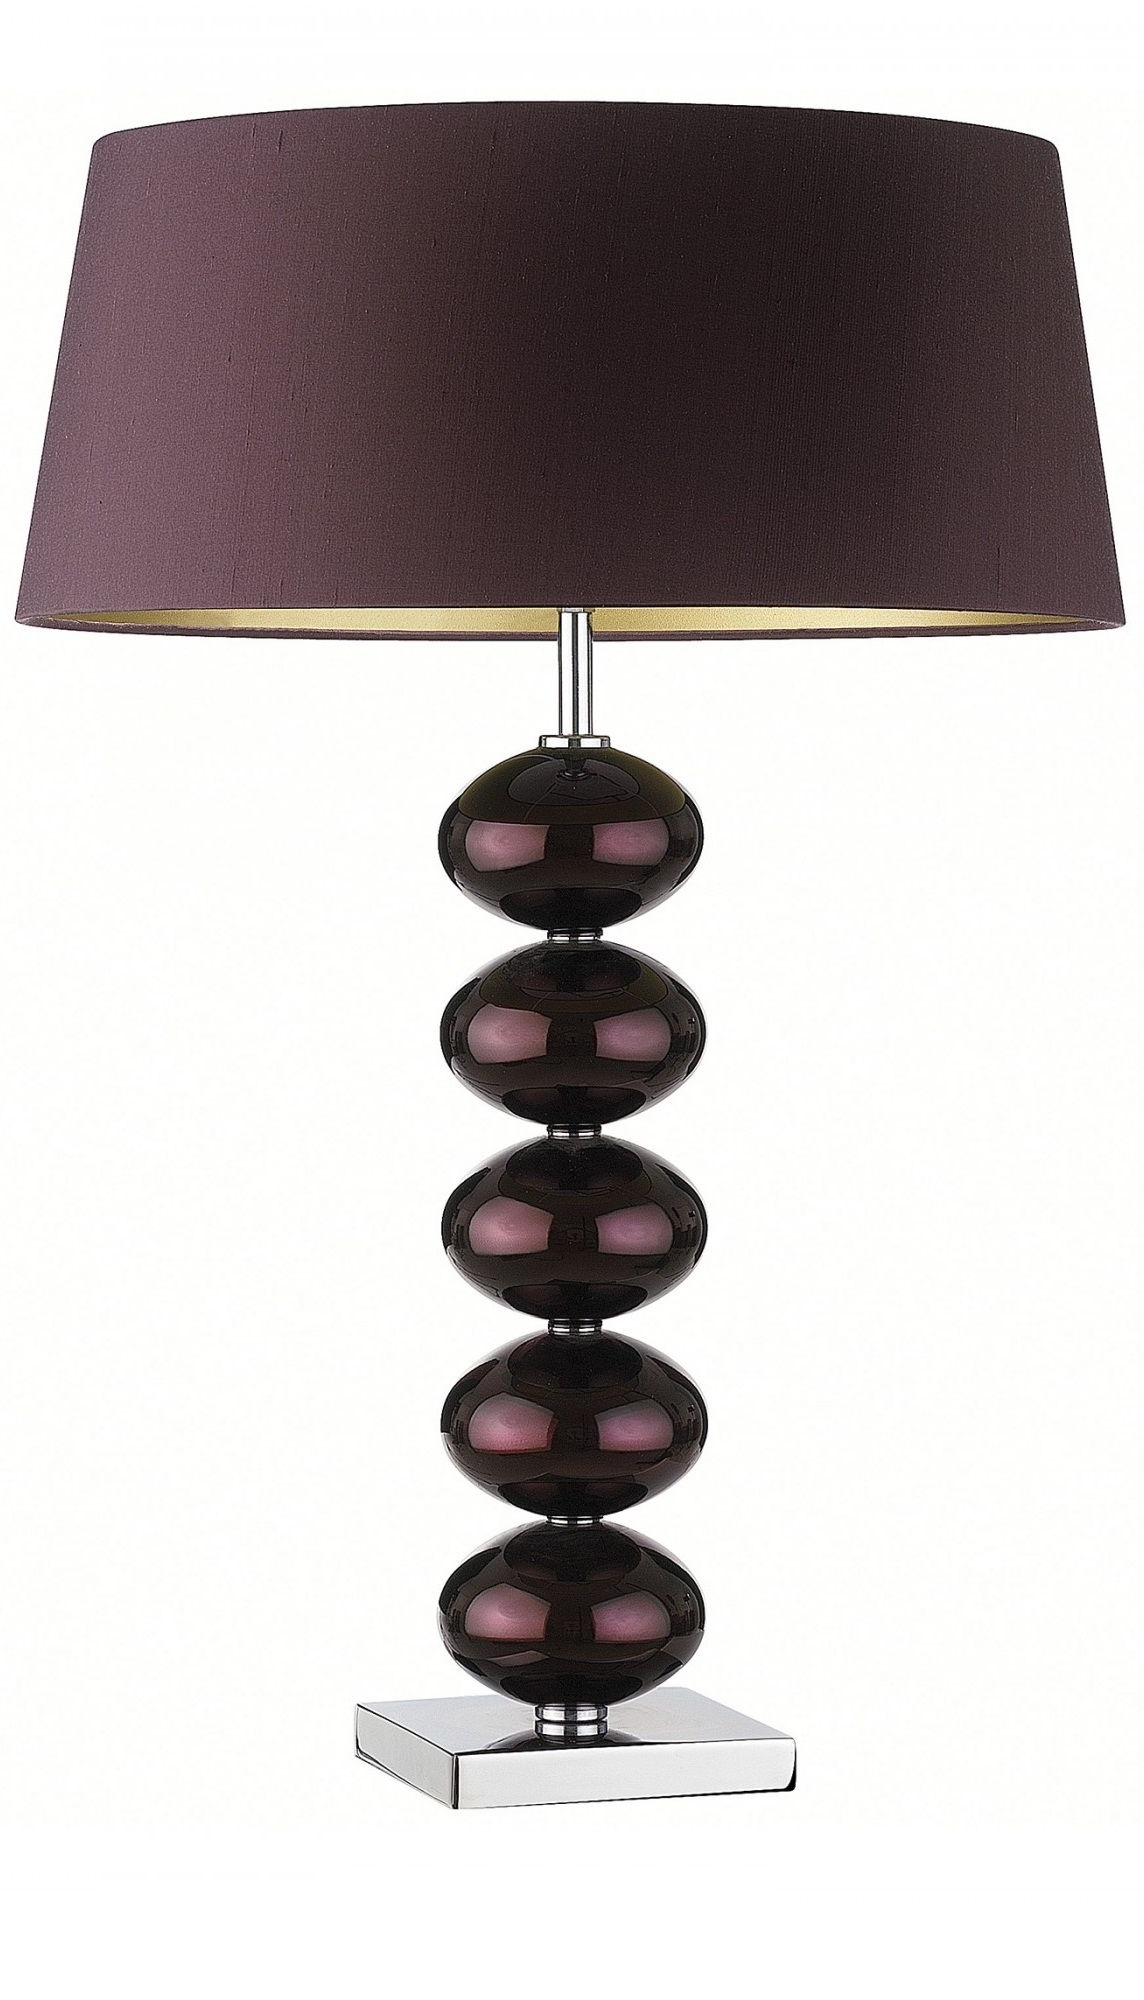 "Newest Purple"" Purple Table Lamp, Table Lamps, Modern Table Lamps Regarding Purple Living Room Table Lamps (View 5 of 20)"